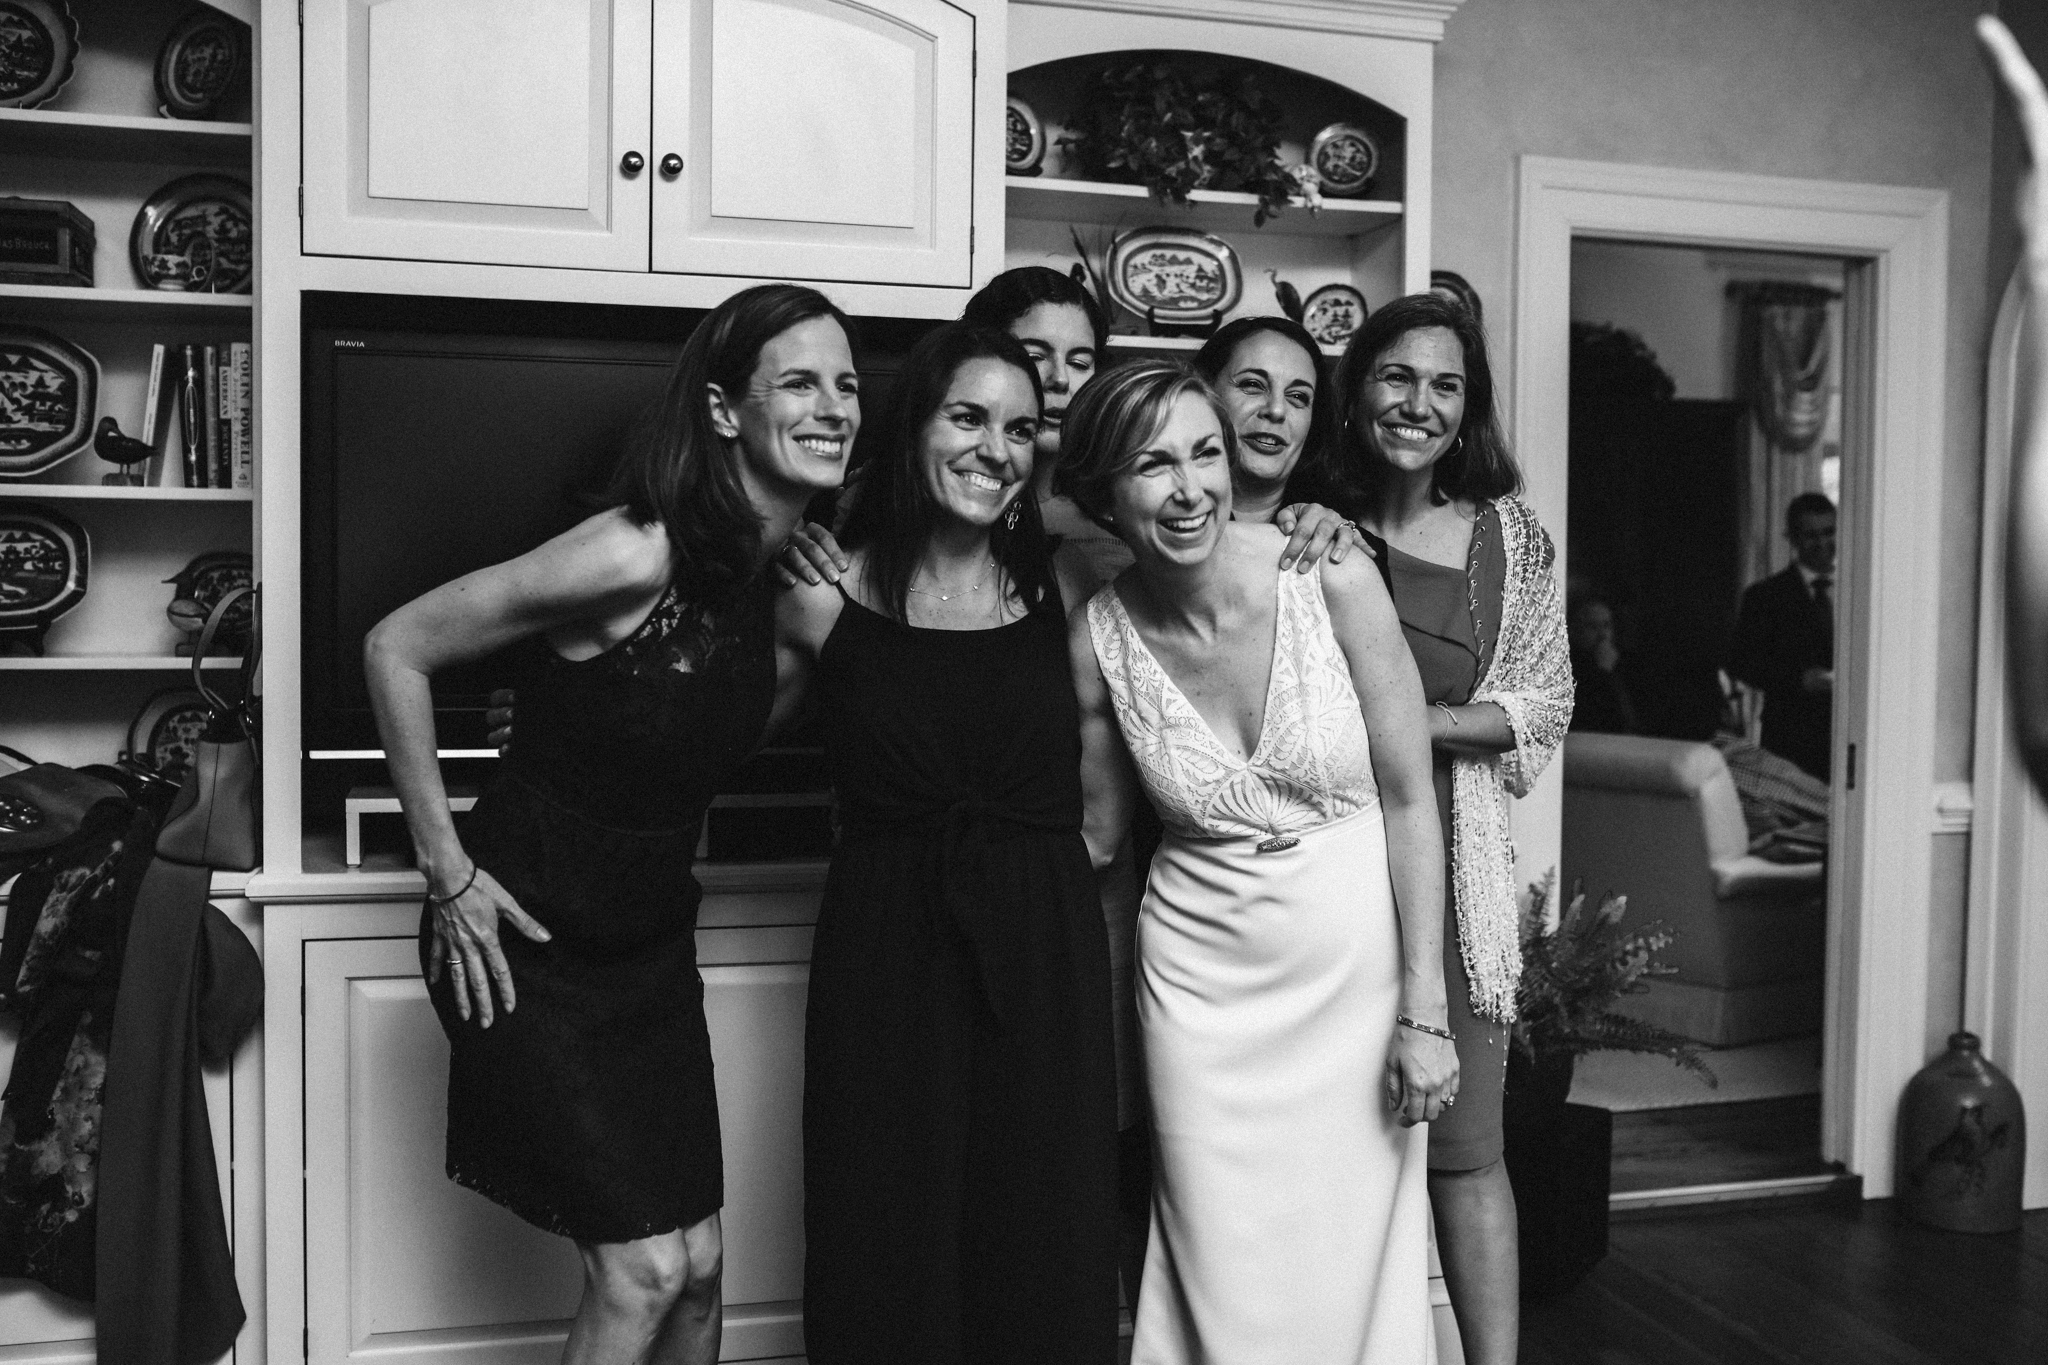 cook_wedding_richmond_virginia_rebecca_burt_photography-99.jpg